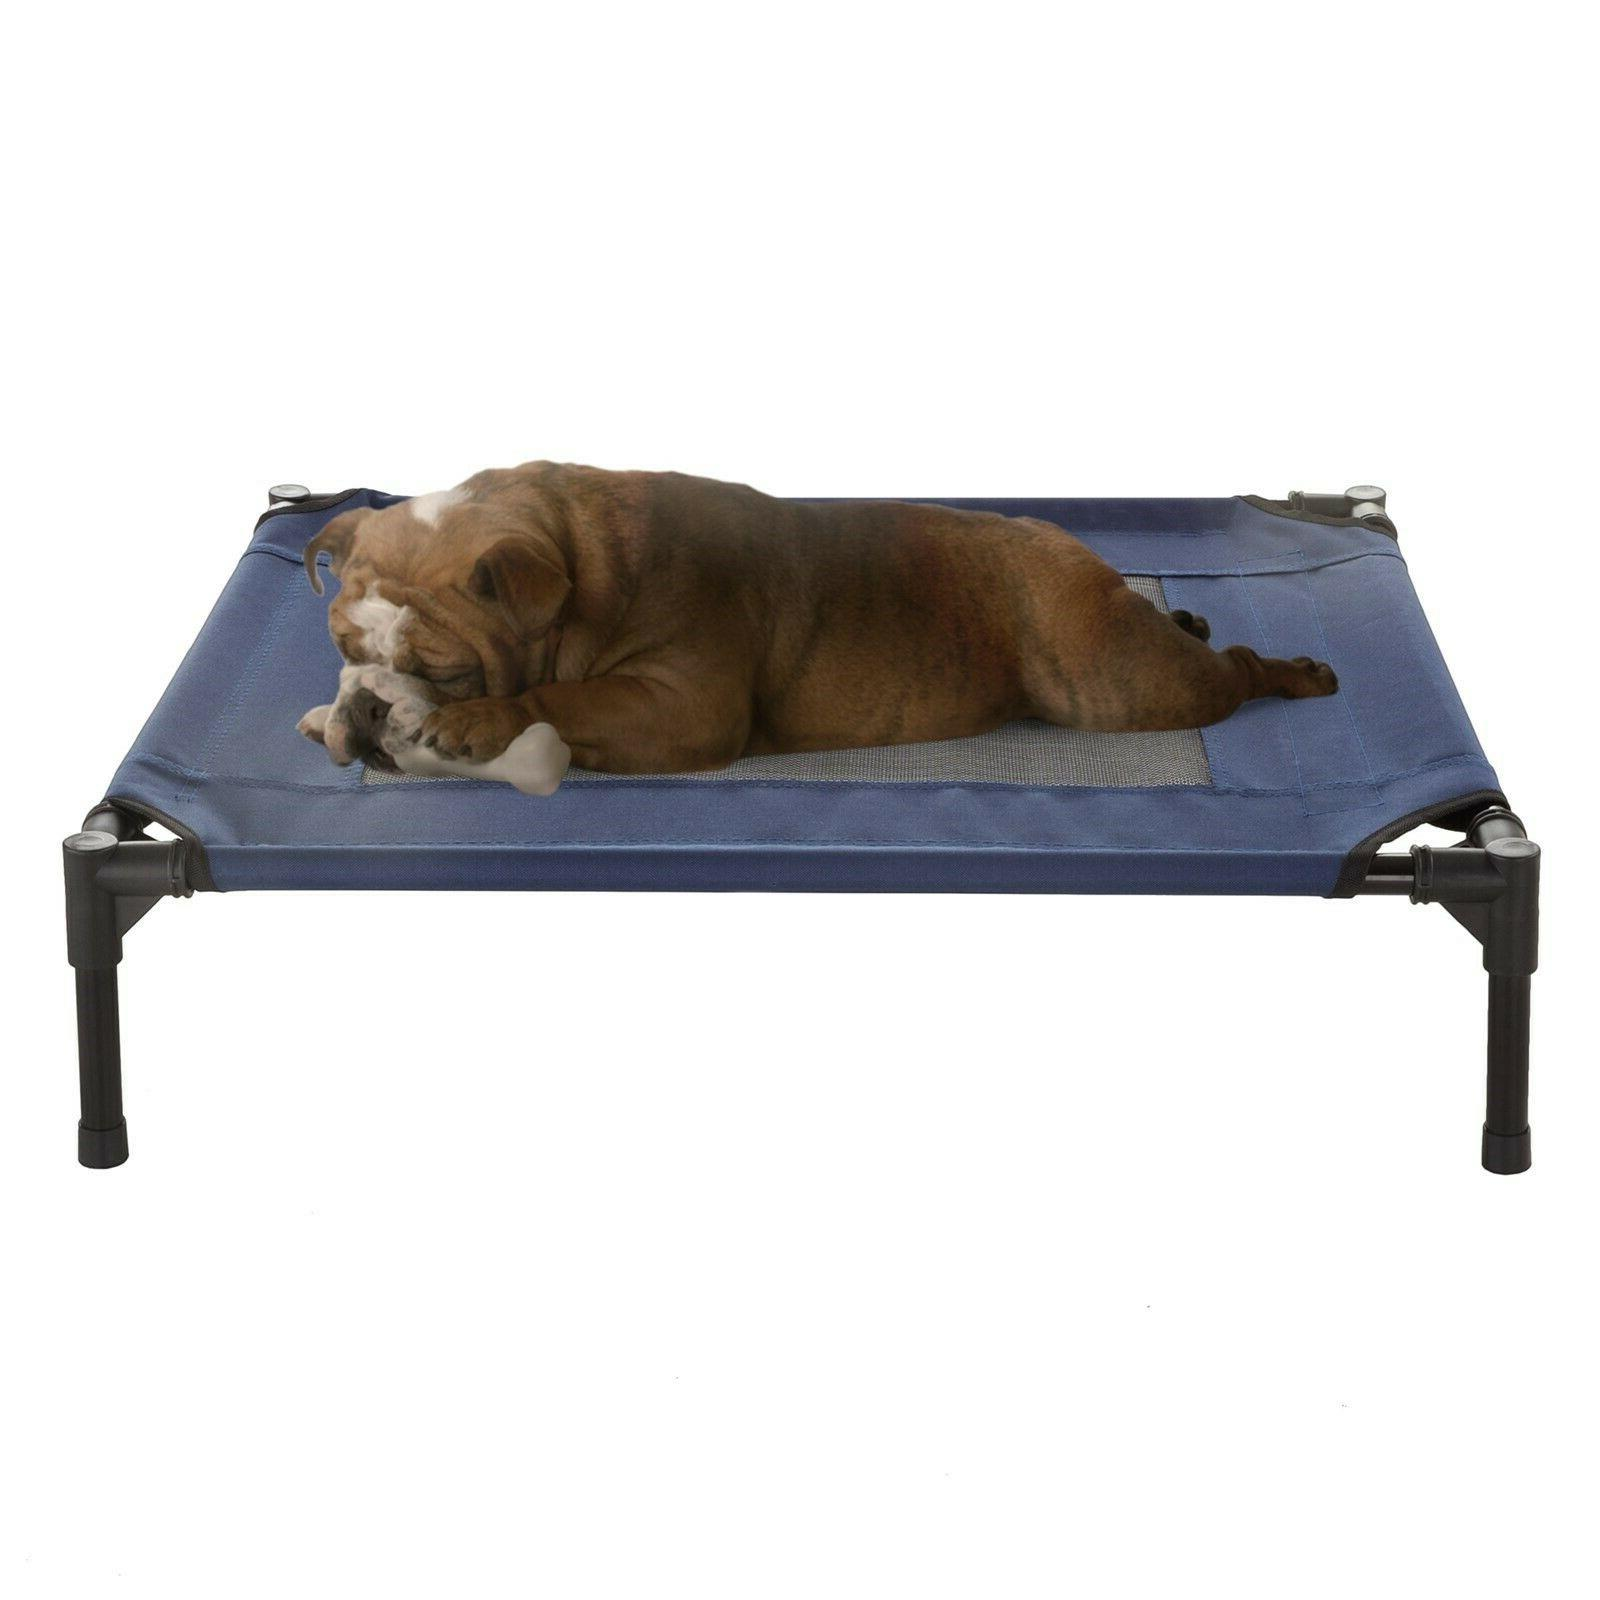 small med dog cat bed indoor outdoor